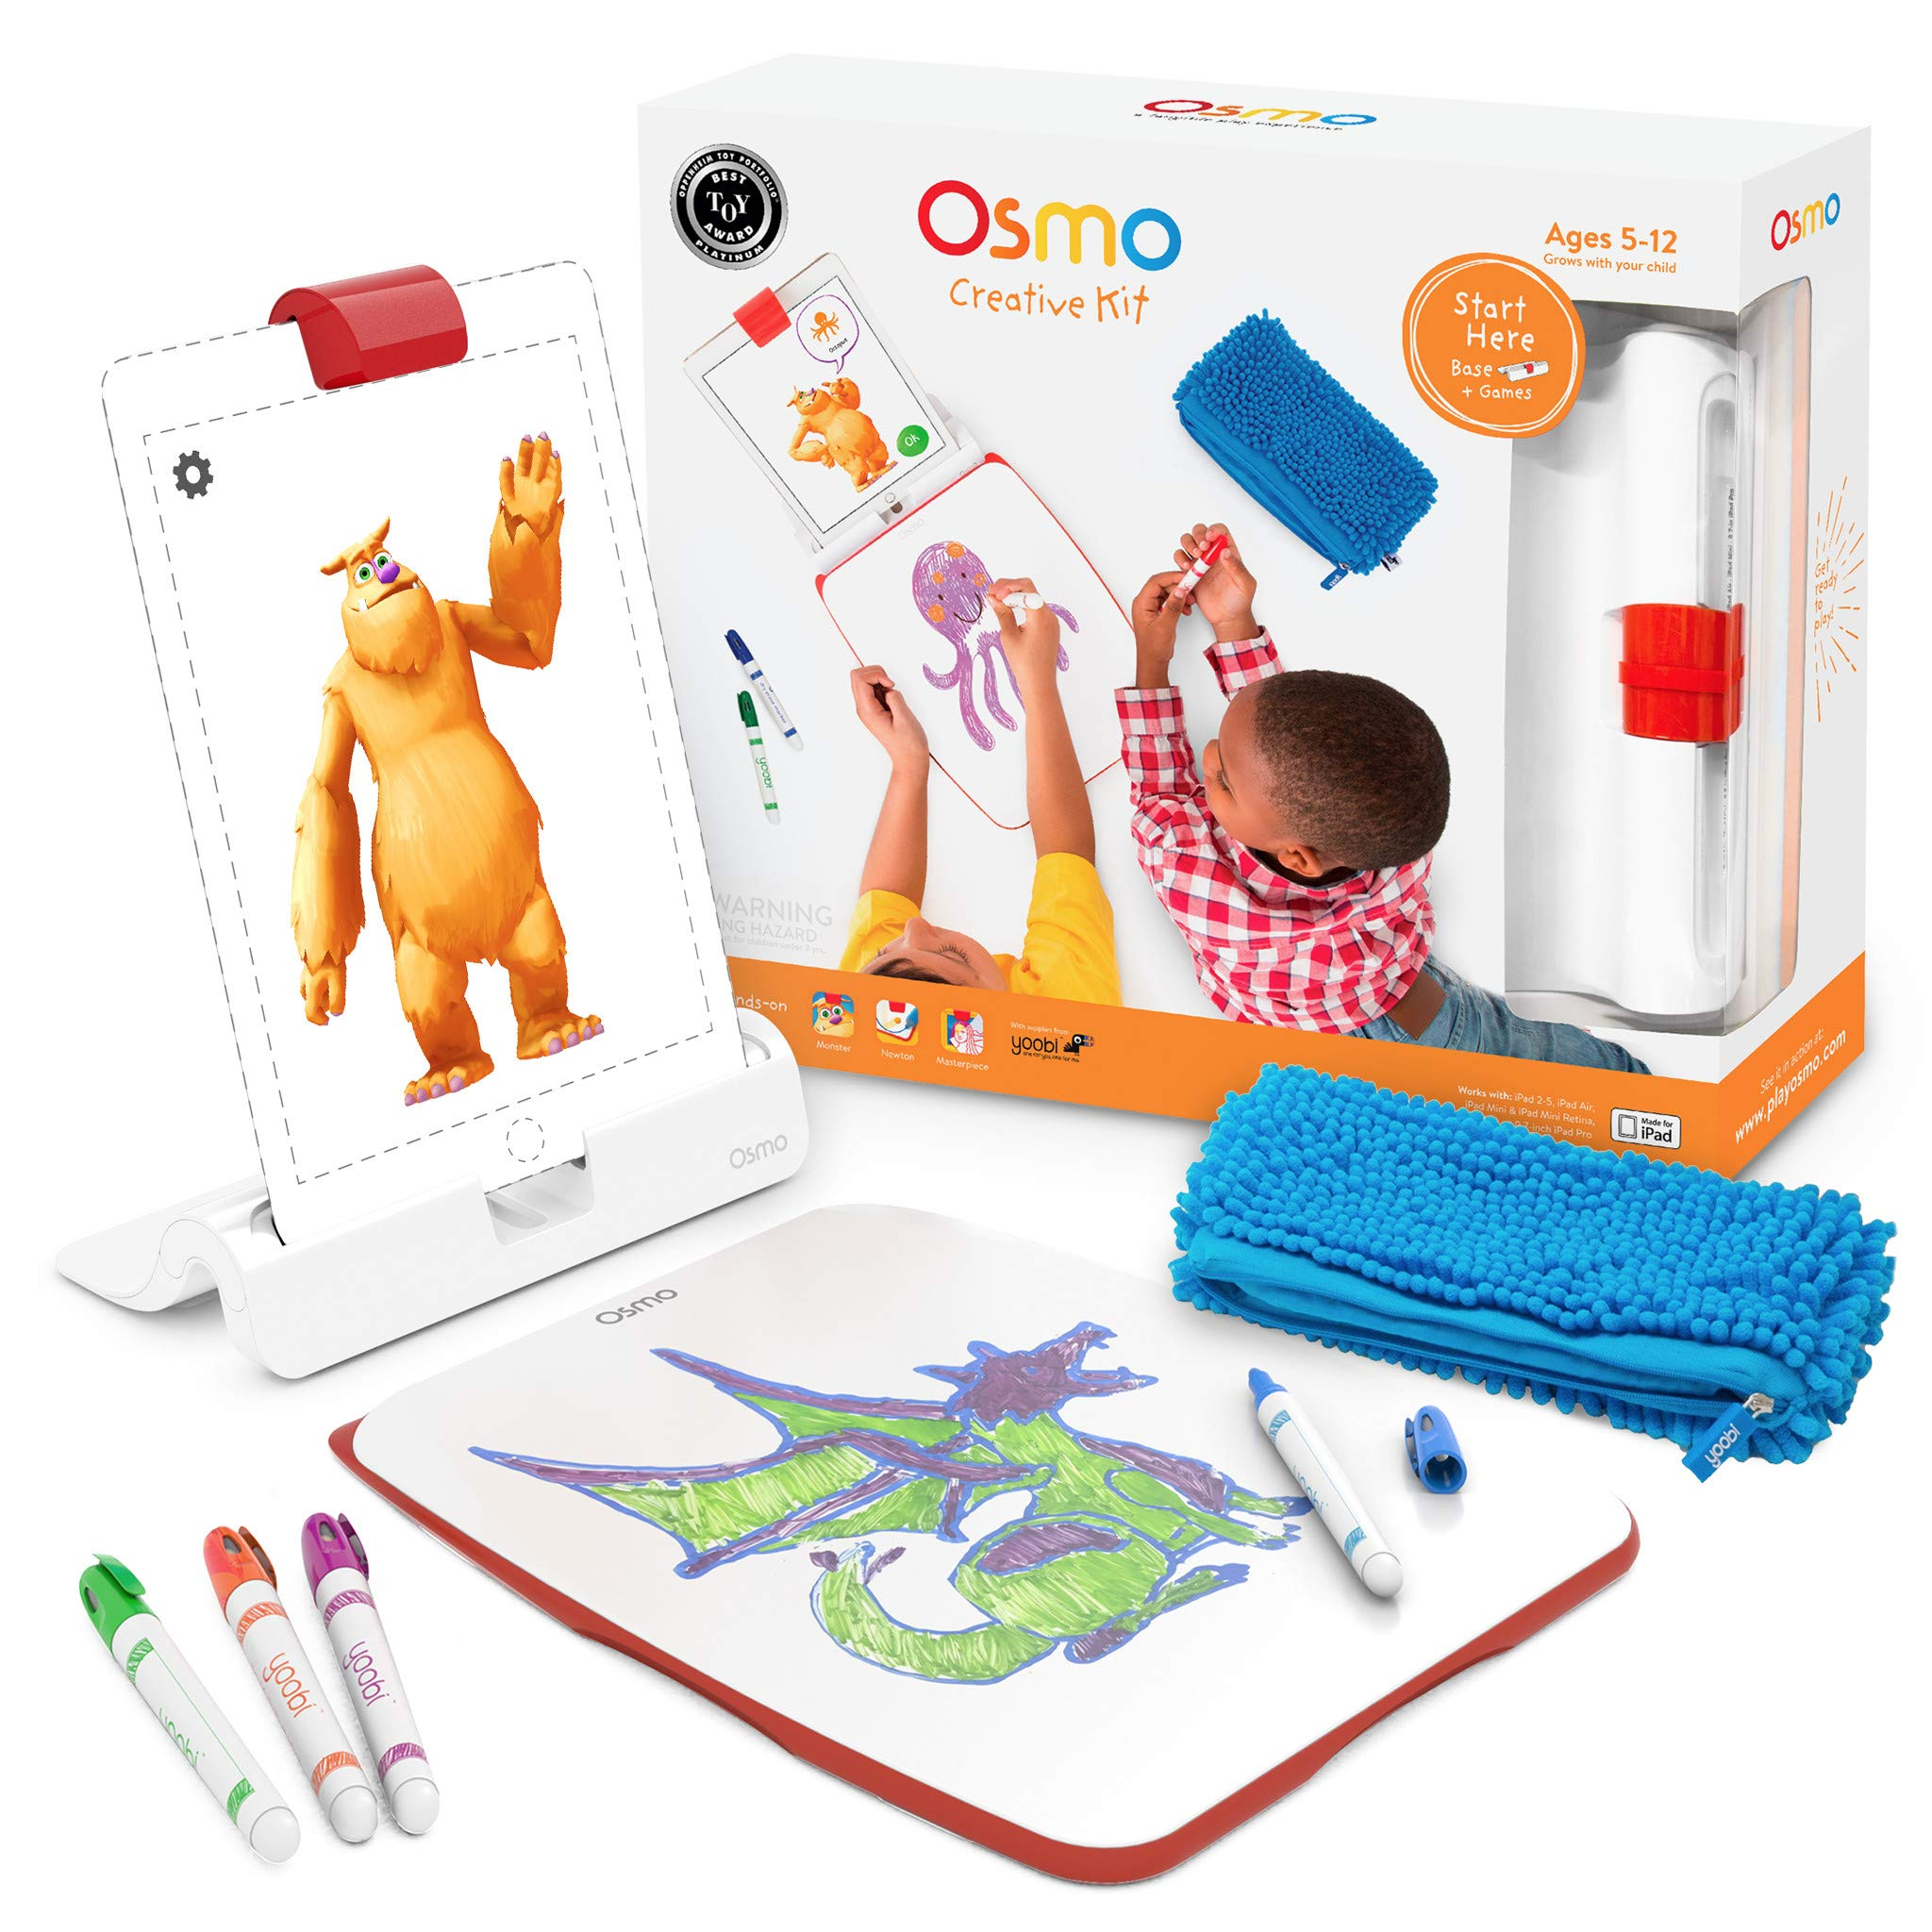 Osmo - Creative Kit for iPad - 3 Hands-On Learning Games - Ages 5-10 - Creative Drawing & Problem Solving/Early Physics - STEM - (Osmo iPad Base Included) by Osmo (Image #1)